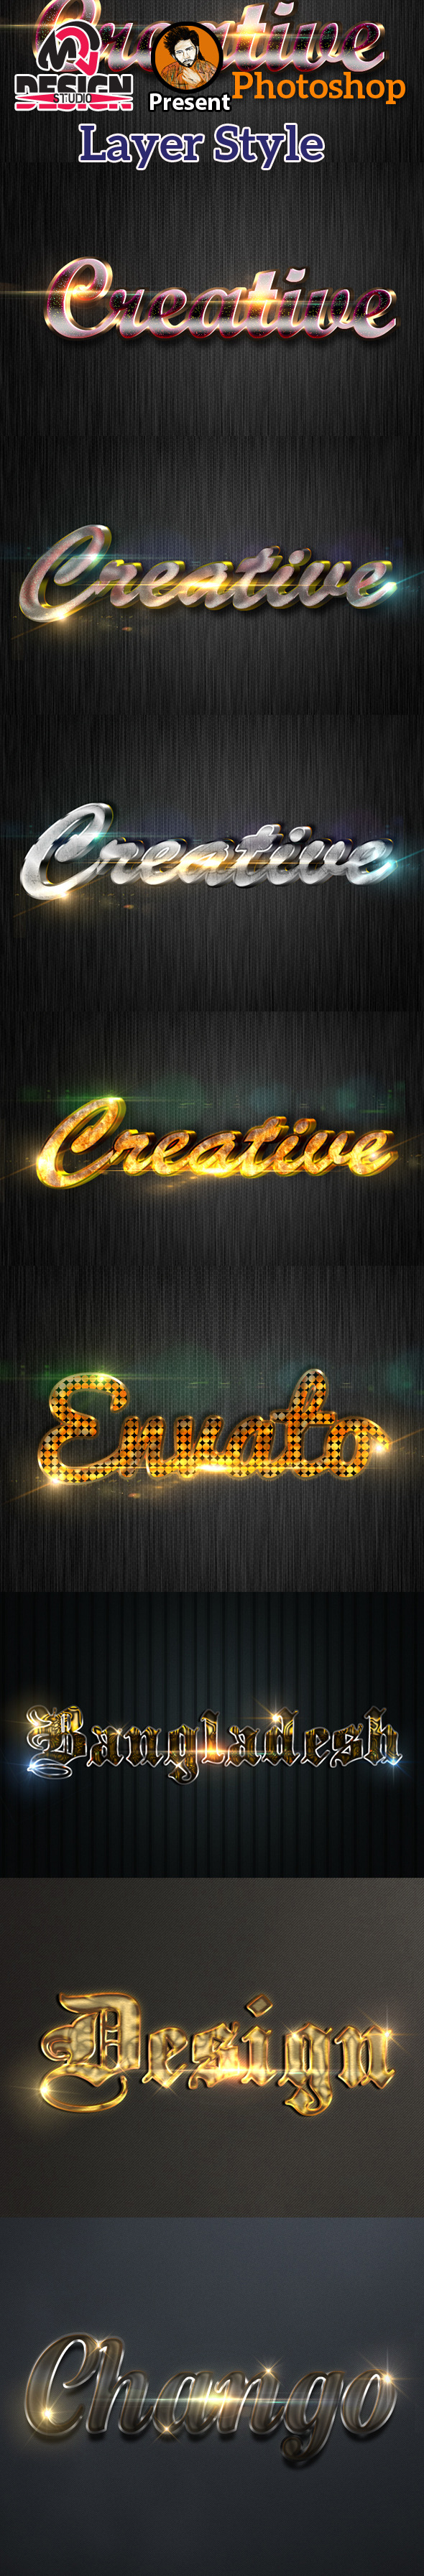 3D Collection Text Effects - Styles Photoshop